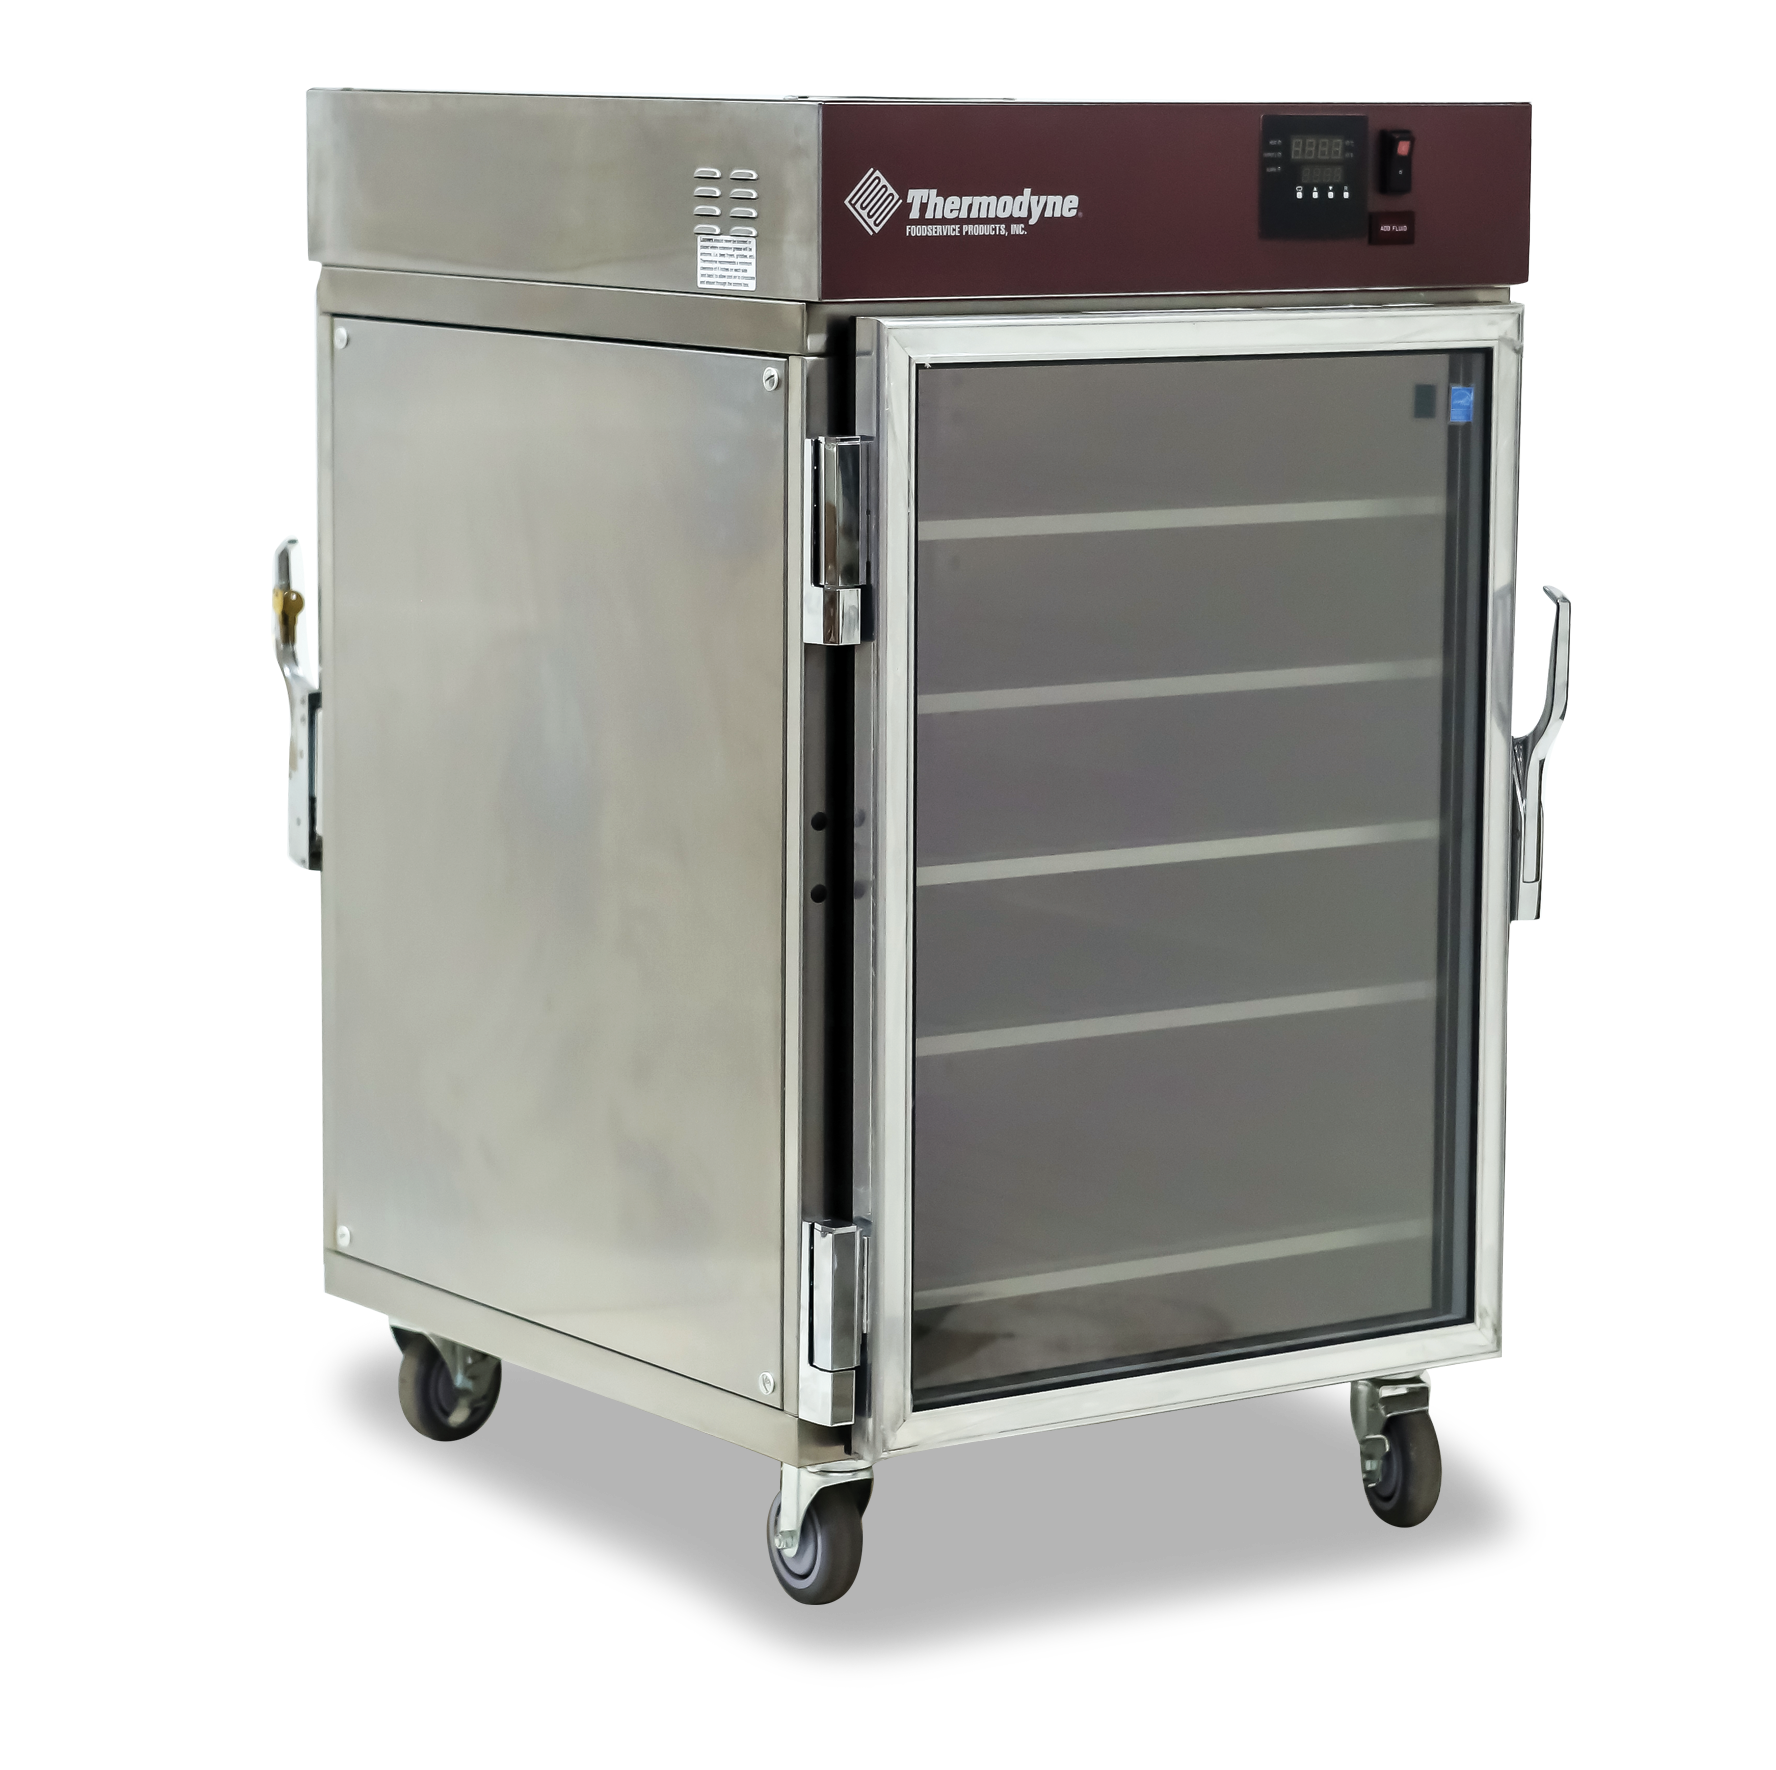 Food Warmers For Catering ~ Catering food warmers essential for your business